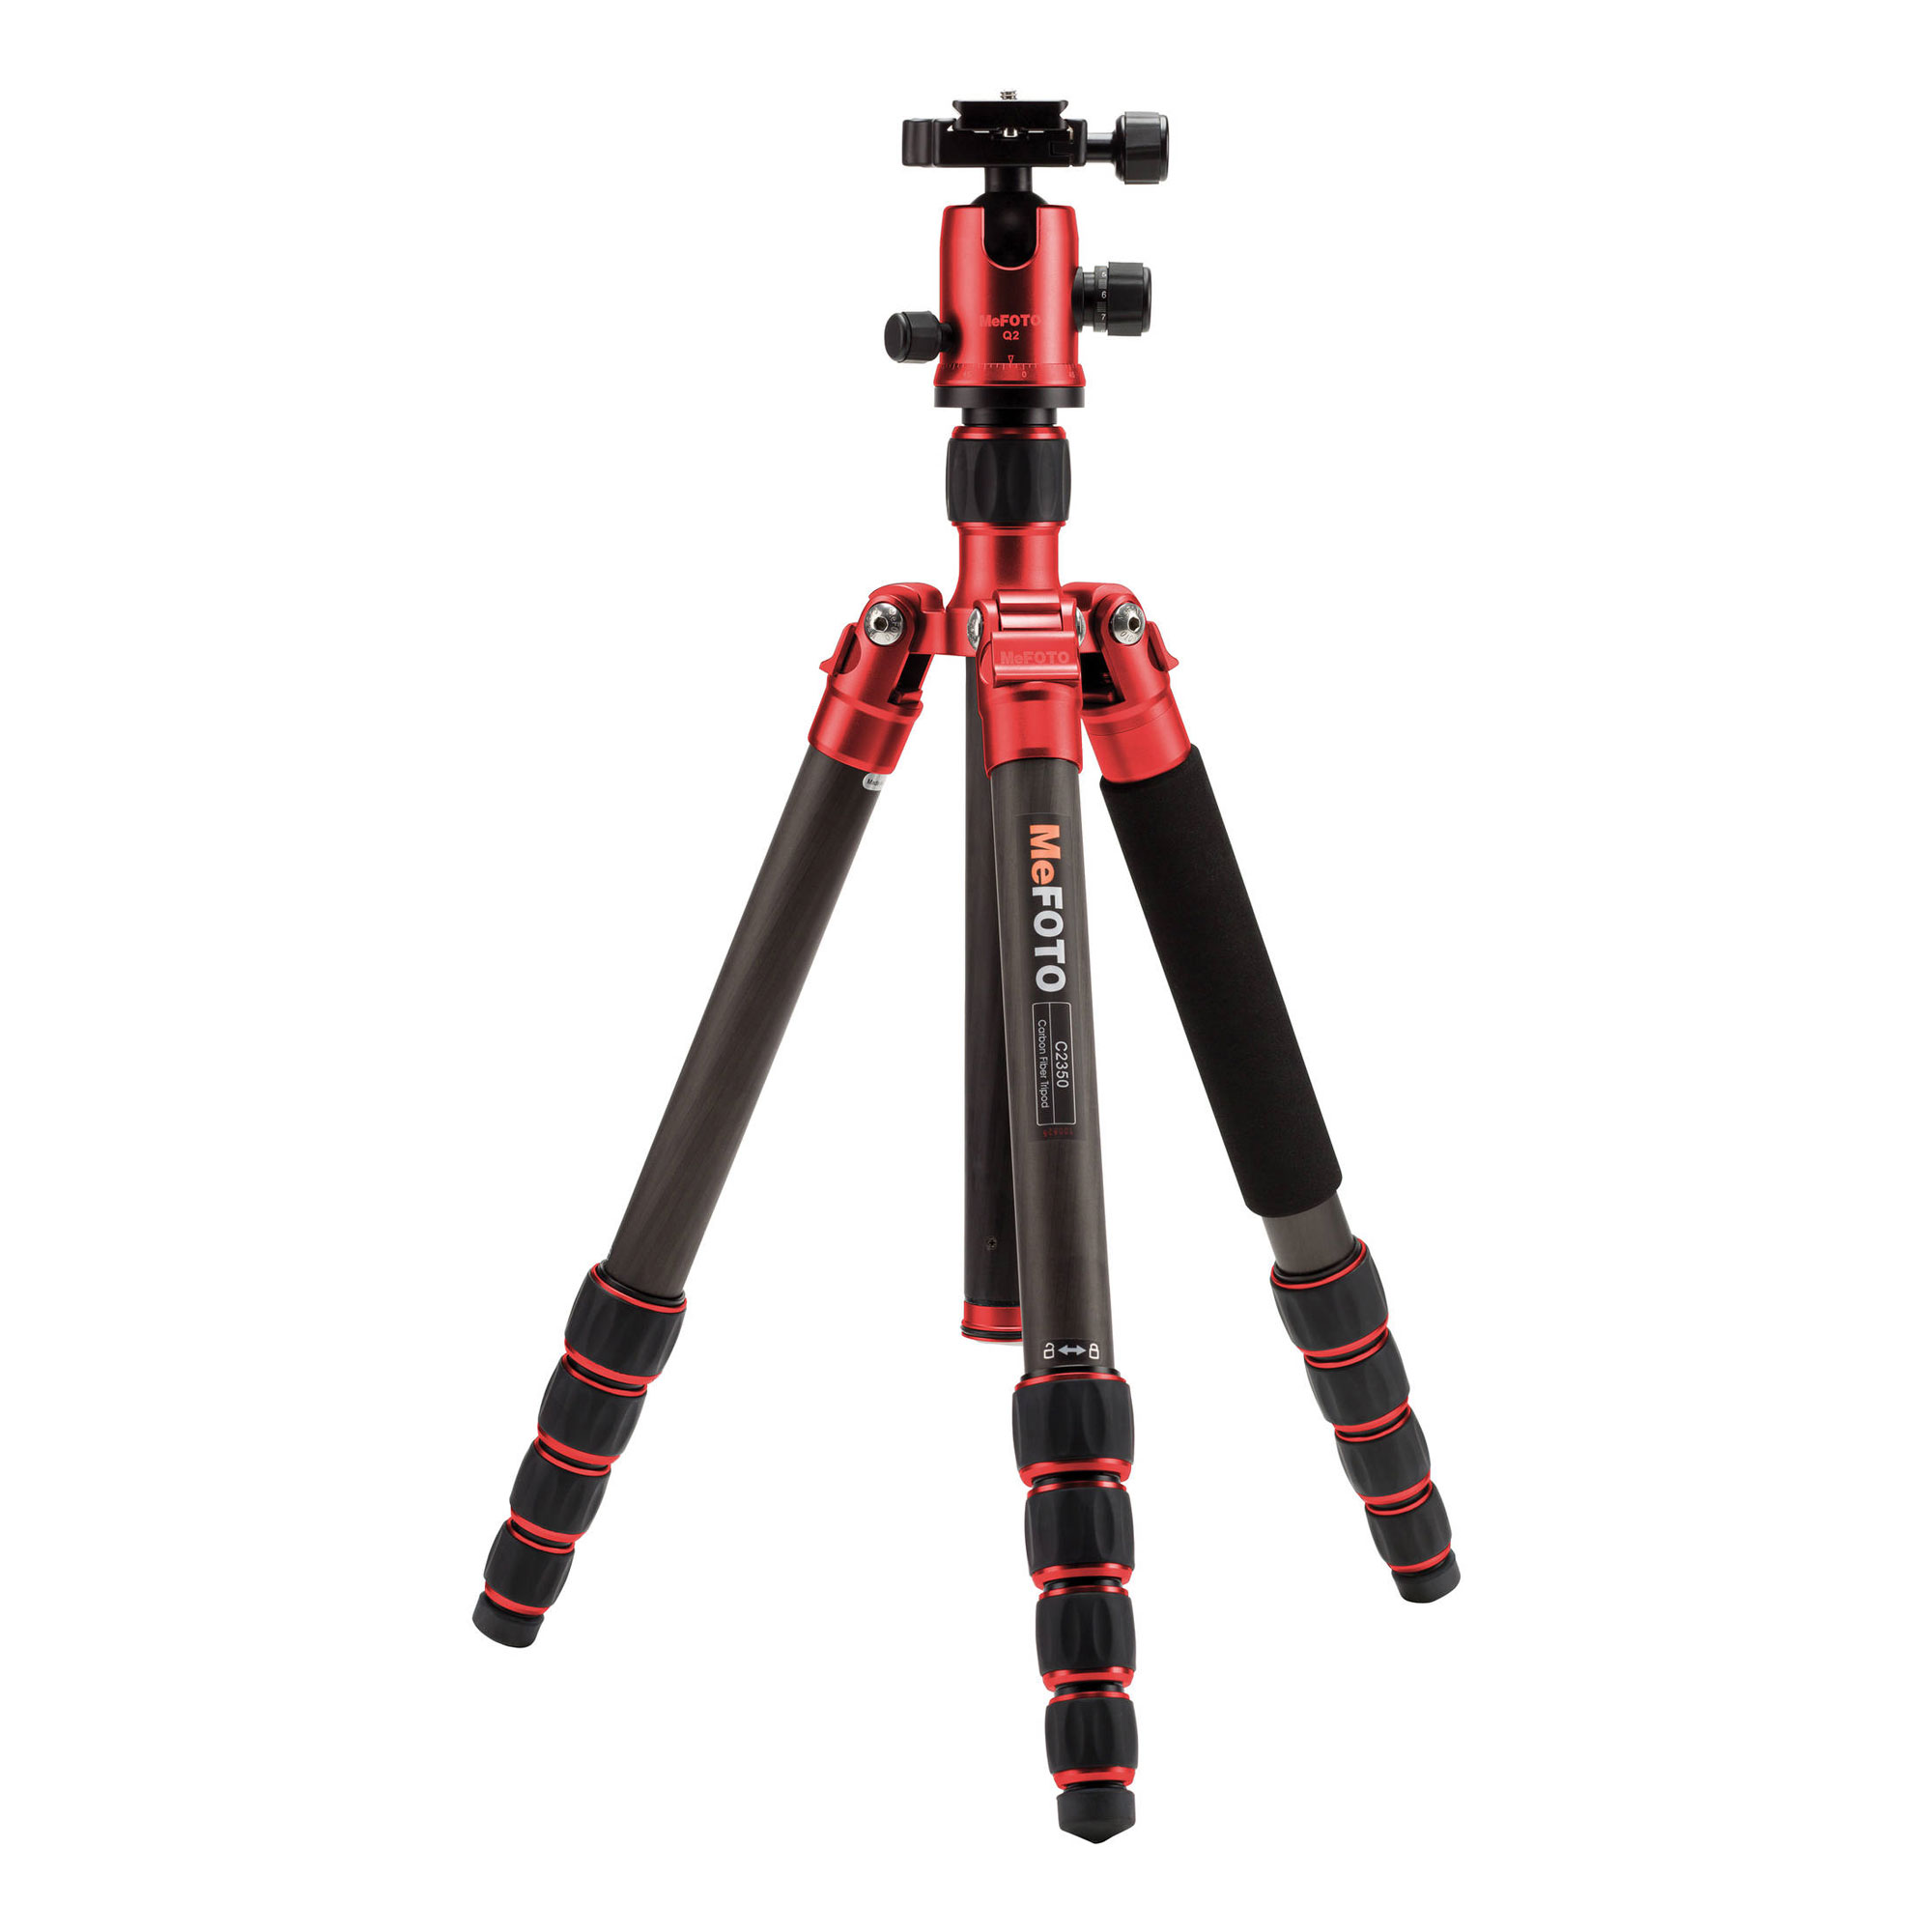 Image of MeFOTO GlobeTrotter Carbon Fiber Travel Tripod Kit (Red)